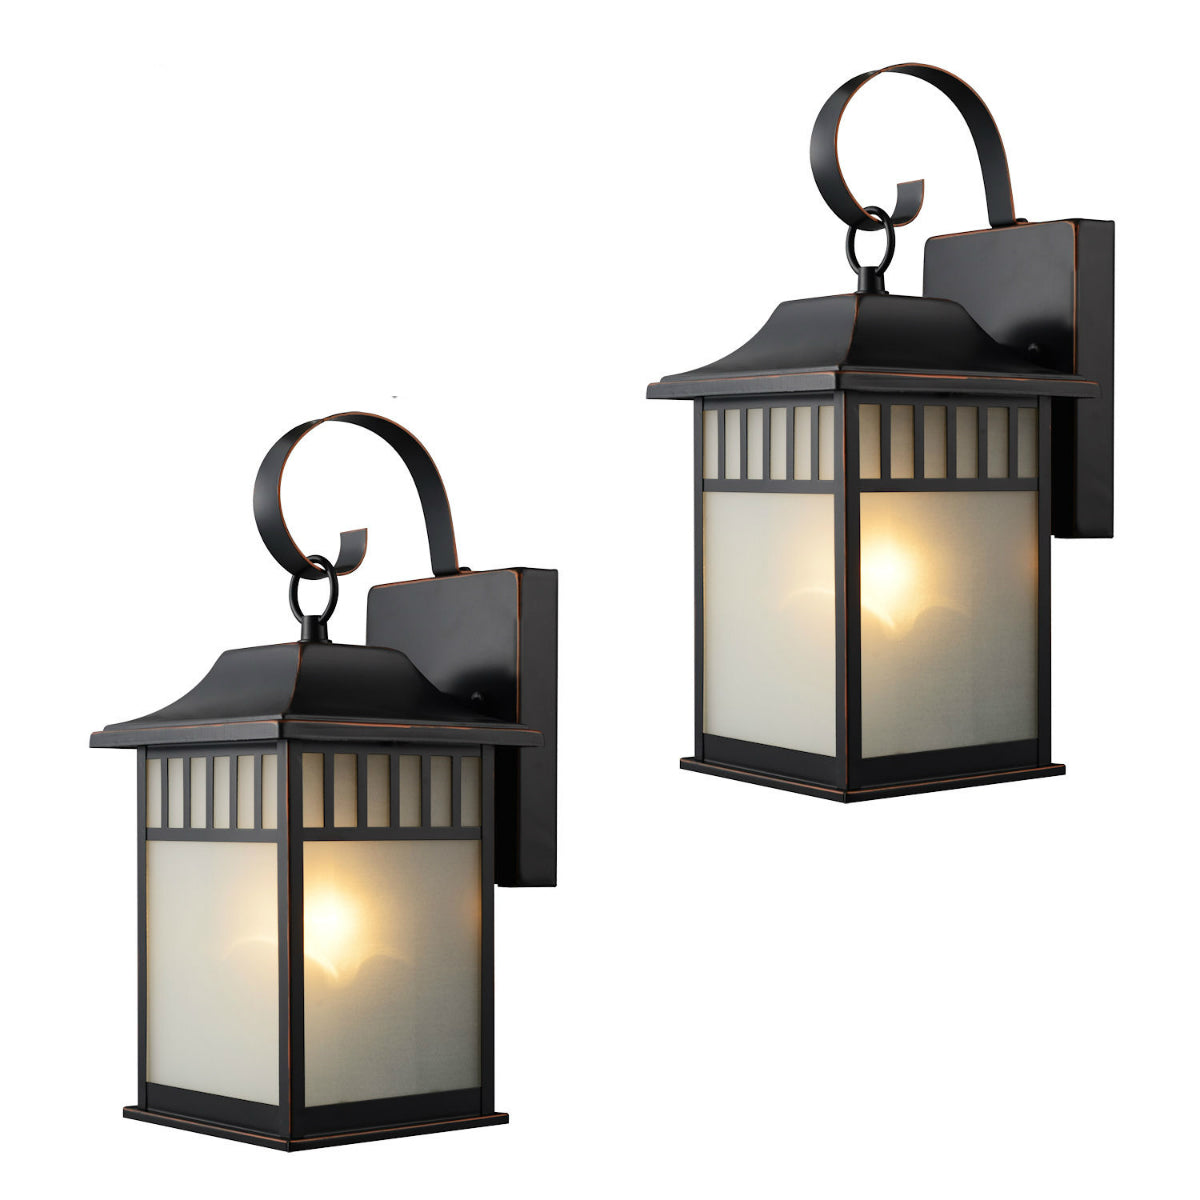 Oil Rubbed Bronze Outdoor Patio / Porch Exterior Light Fixtures - Twin Pack : 73477